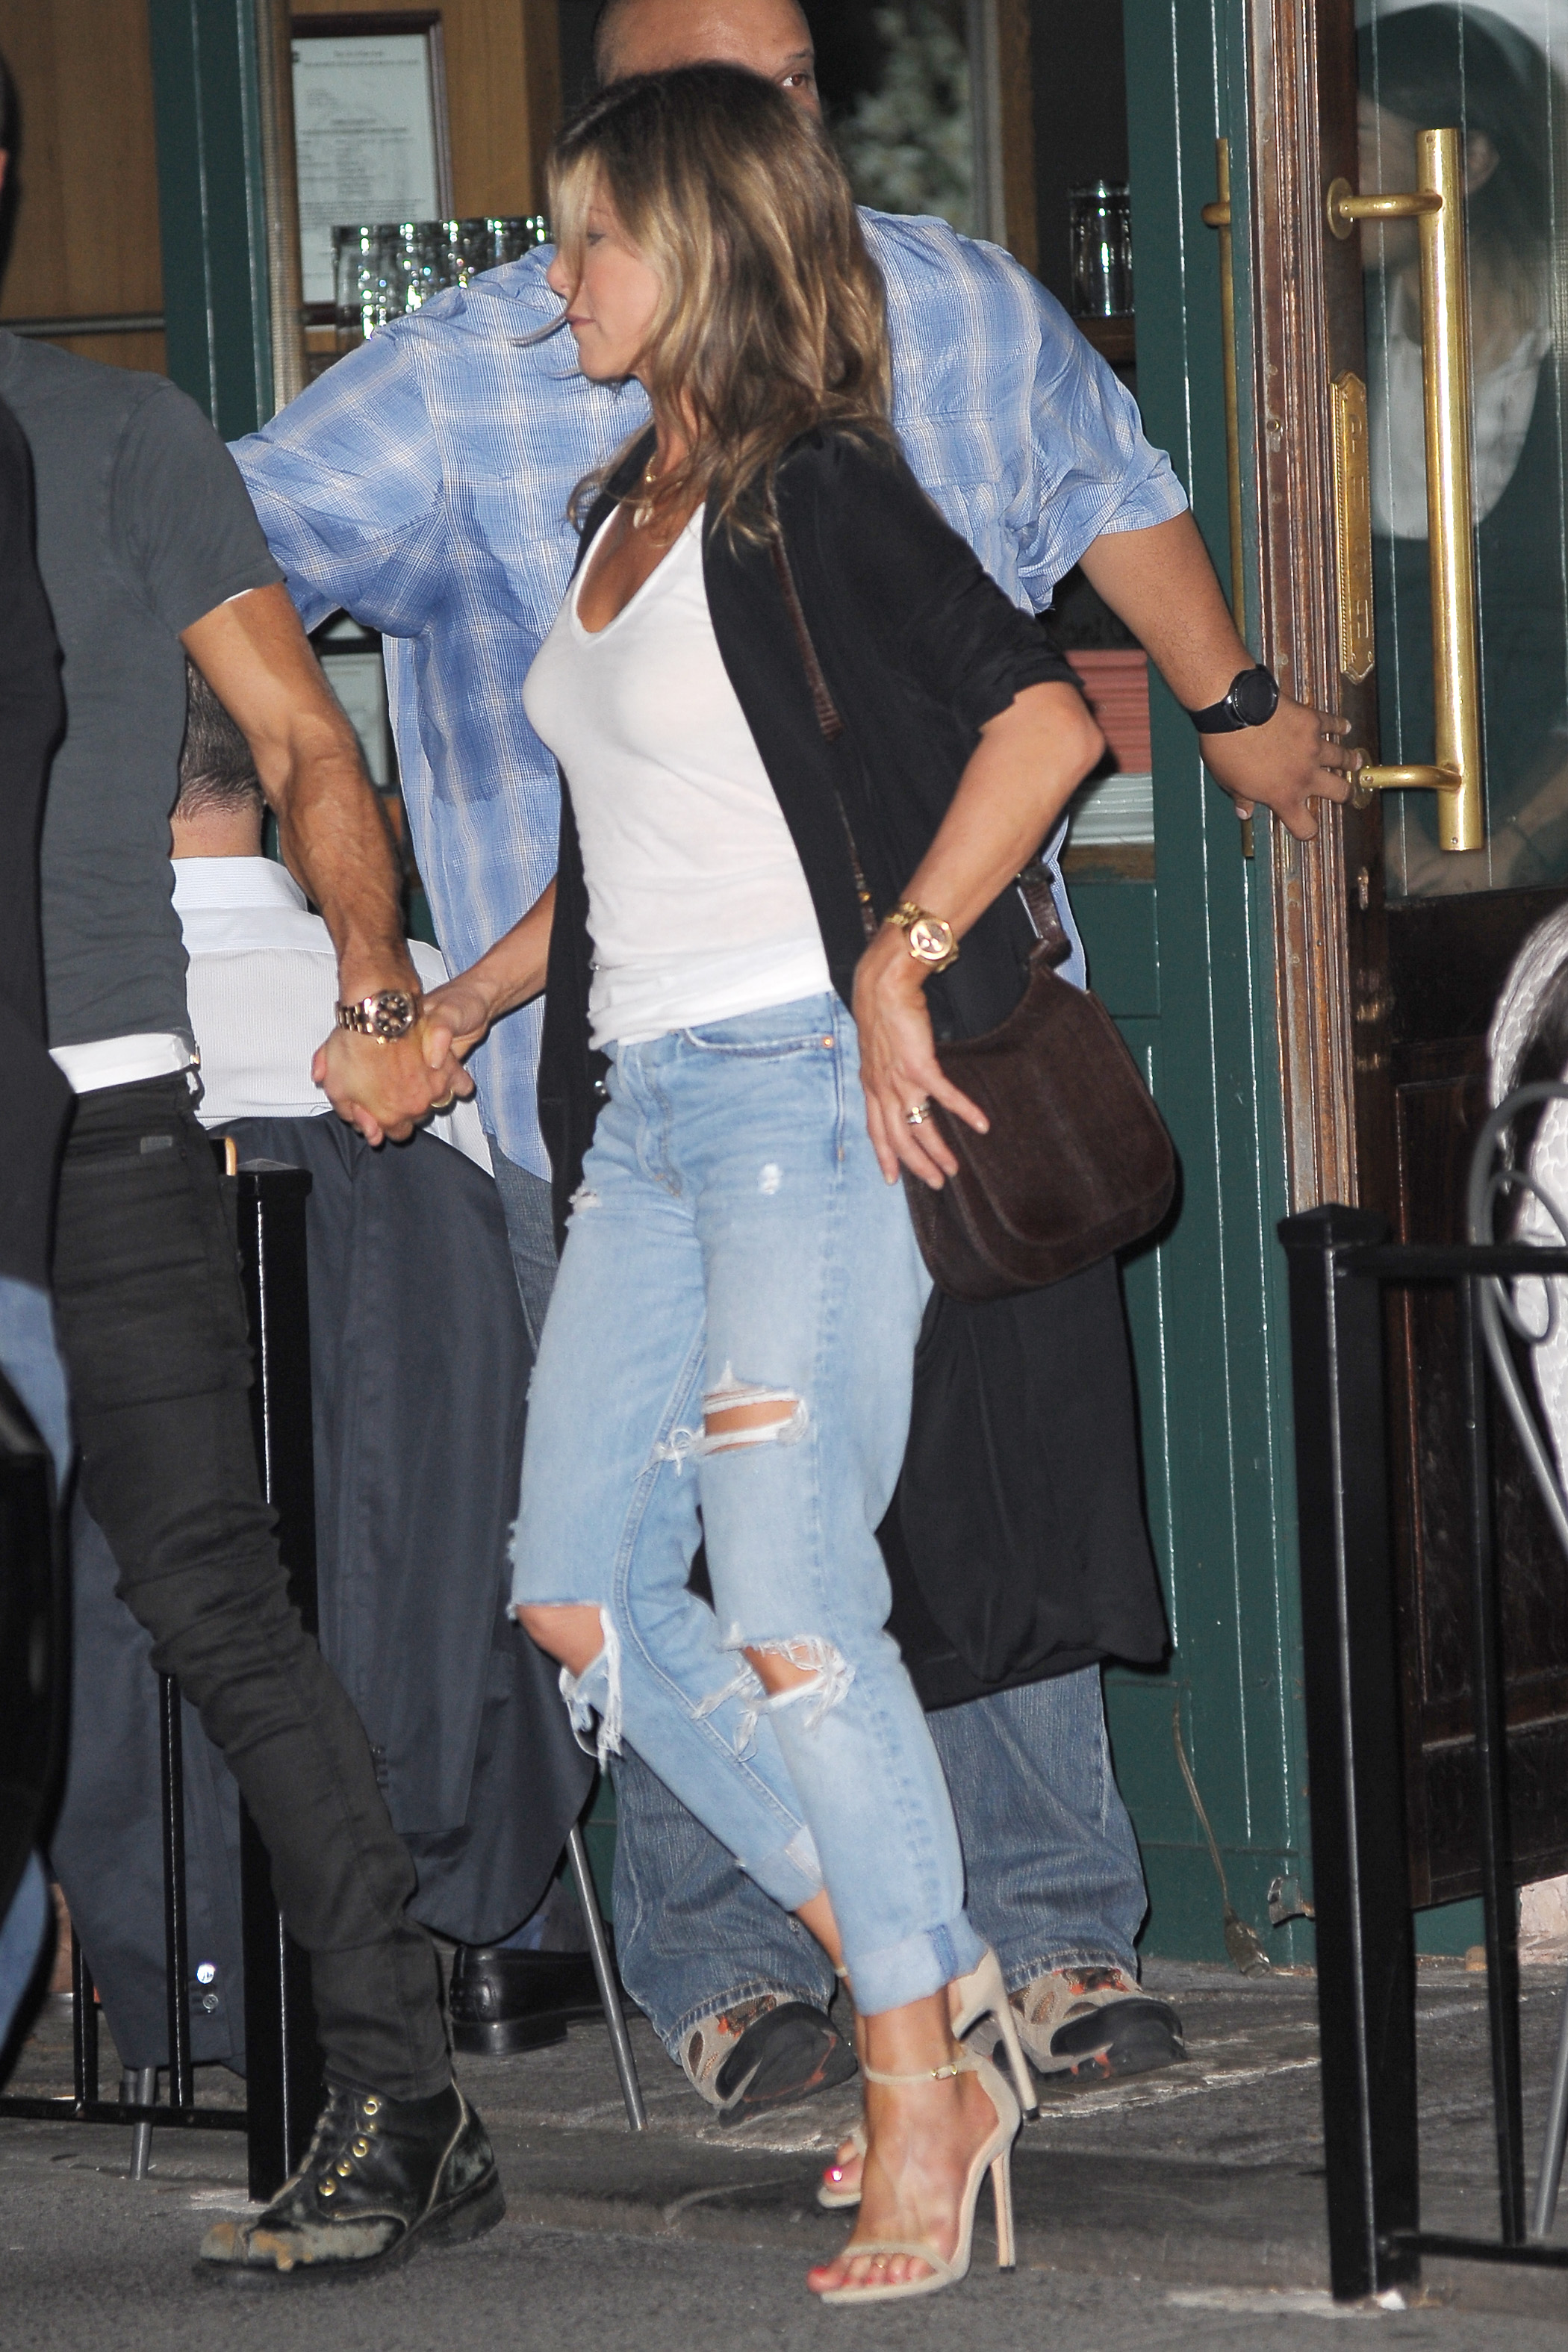 -New York, NY - 7/18/2017 - Jennifer Aniston and Justin Theroux Leaving Sant Ambroeus Restaurant in The West Village. Also there, Jason Bateman    -PICTURED: Jennifer Aniston and Justin Theroux -, Image: 342372270, License: Rights-managed, Restrictions: , Model Release: no, Credit line: Profimedia, INSTAR Images